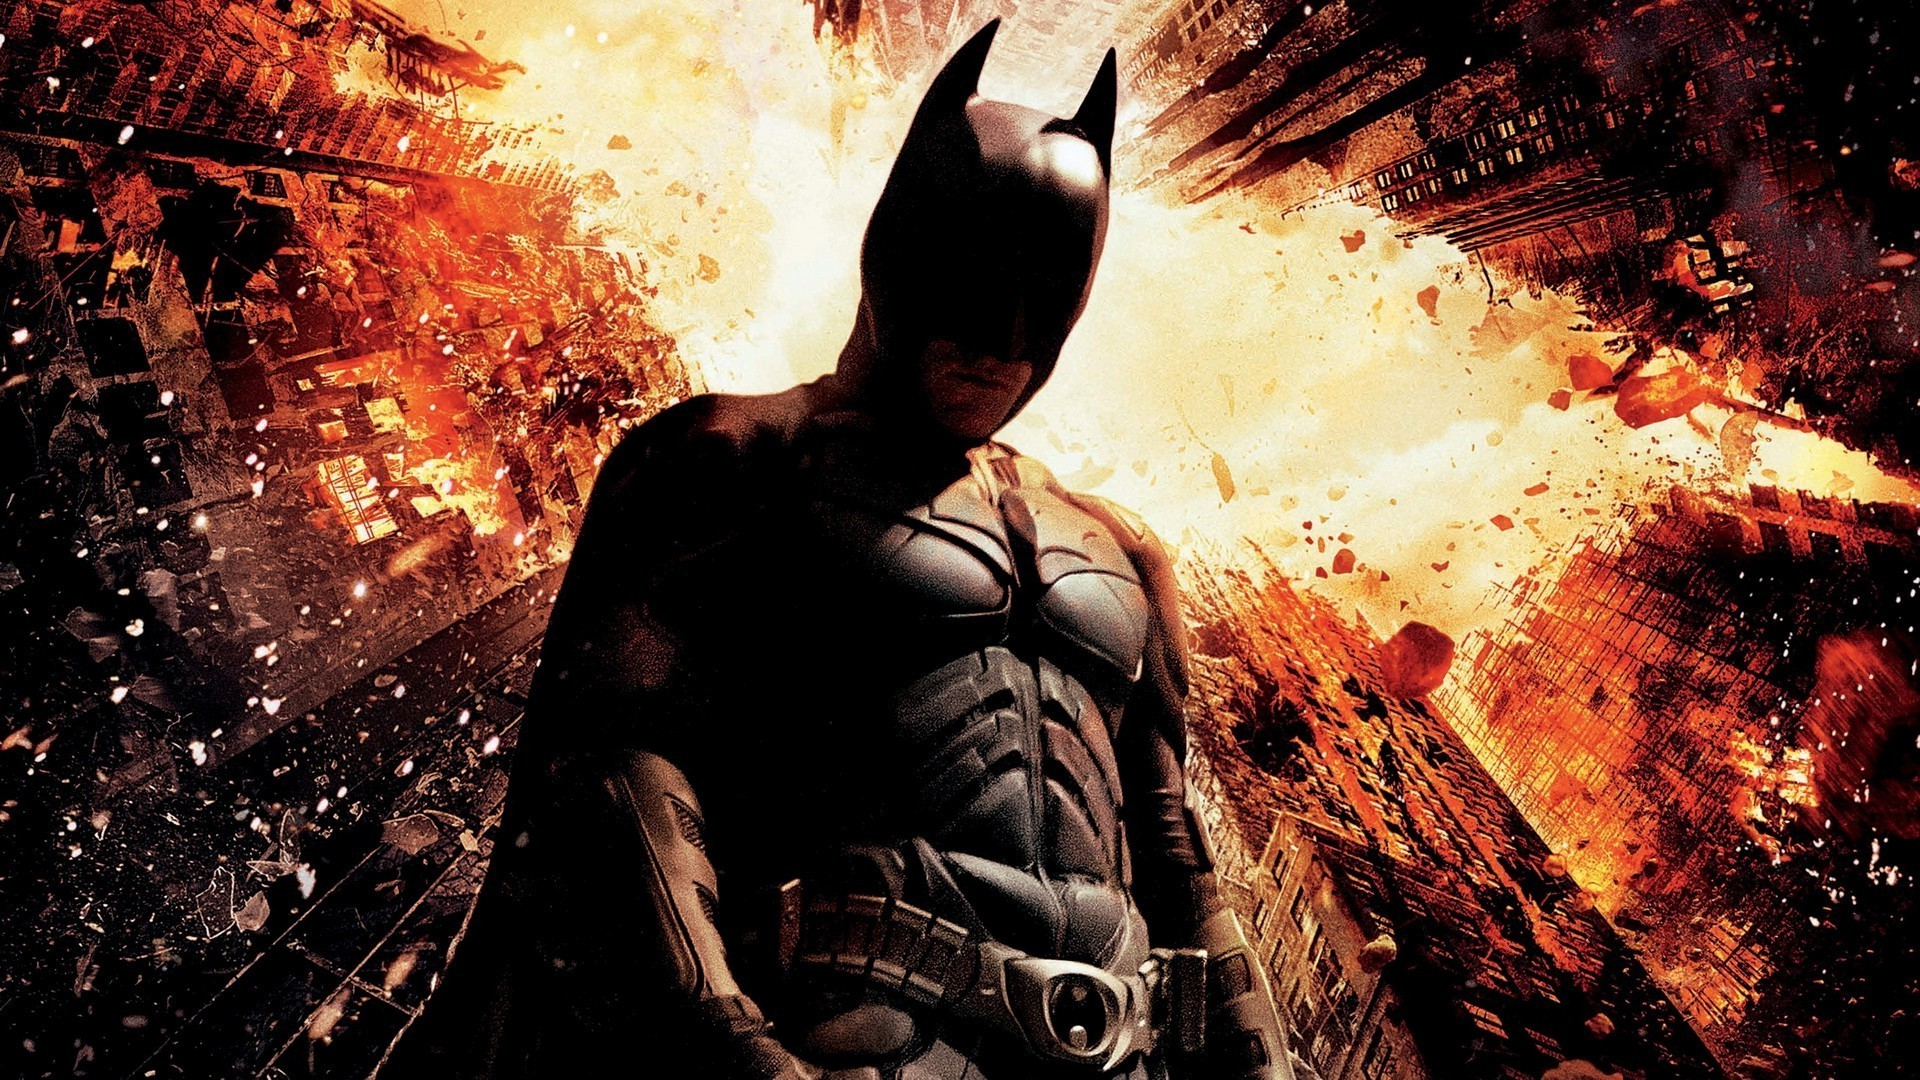 1920x1080 movies The Dark Knight Rises Batman Wallpapers HD Desktop and